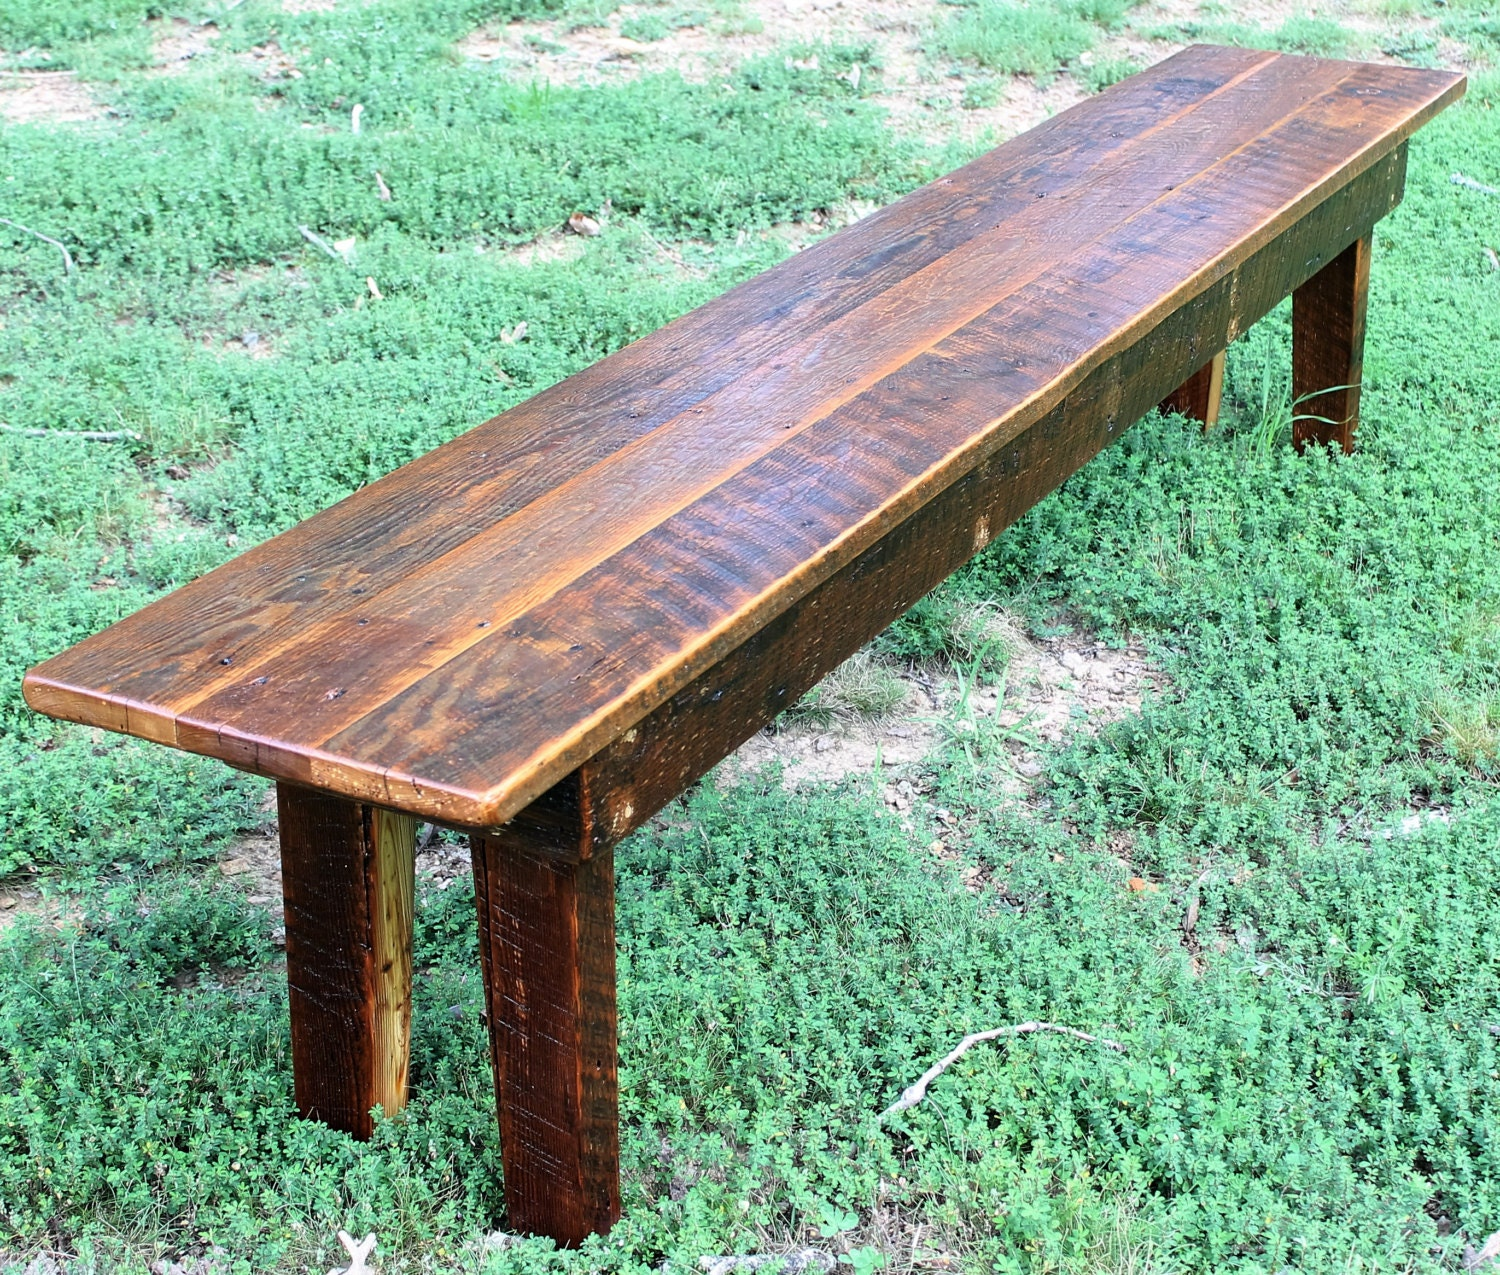 Bench Wood Bench Rustic Bench Reclaimed Wood Bench